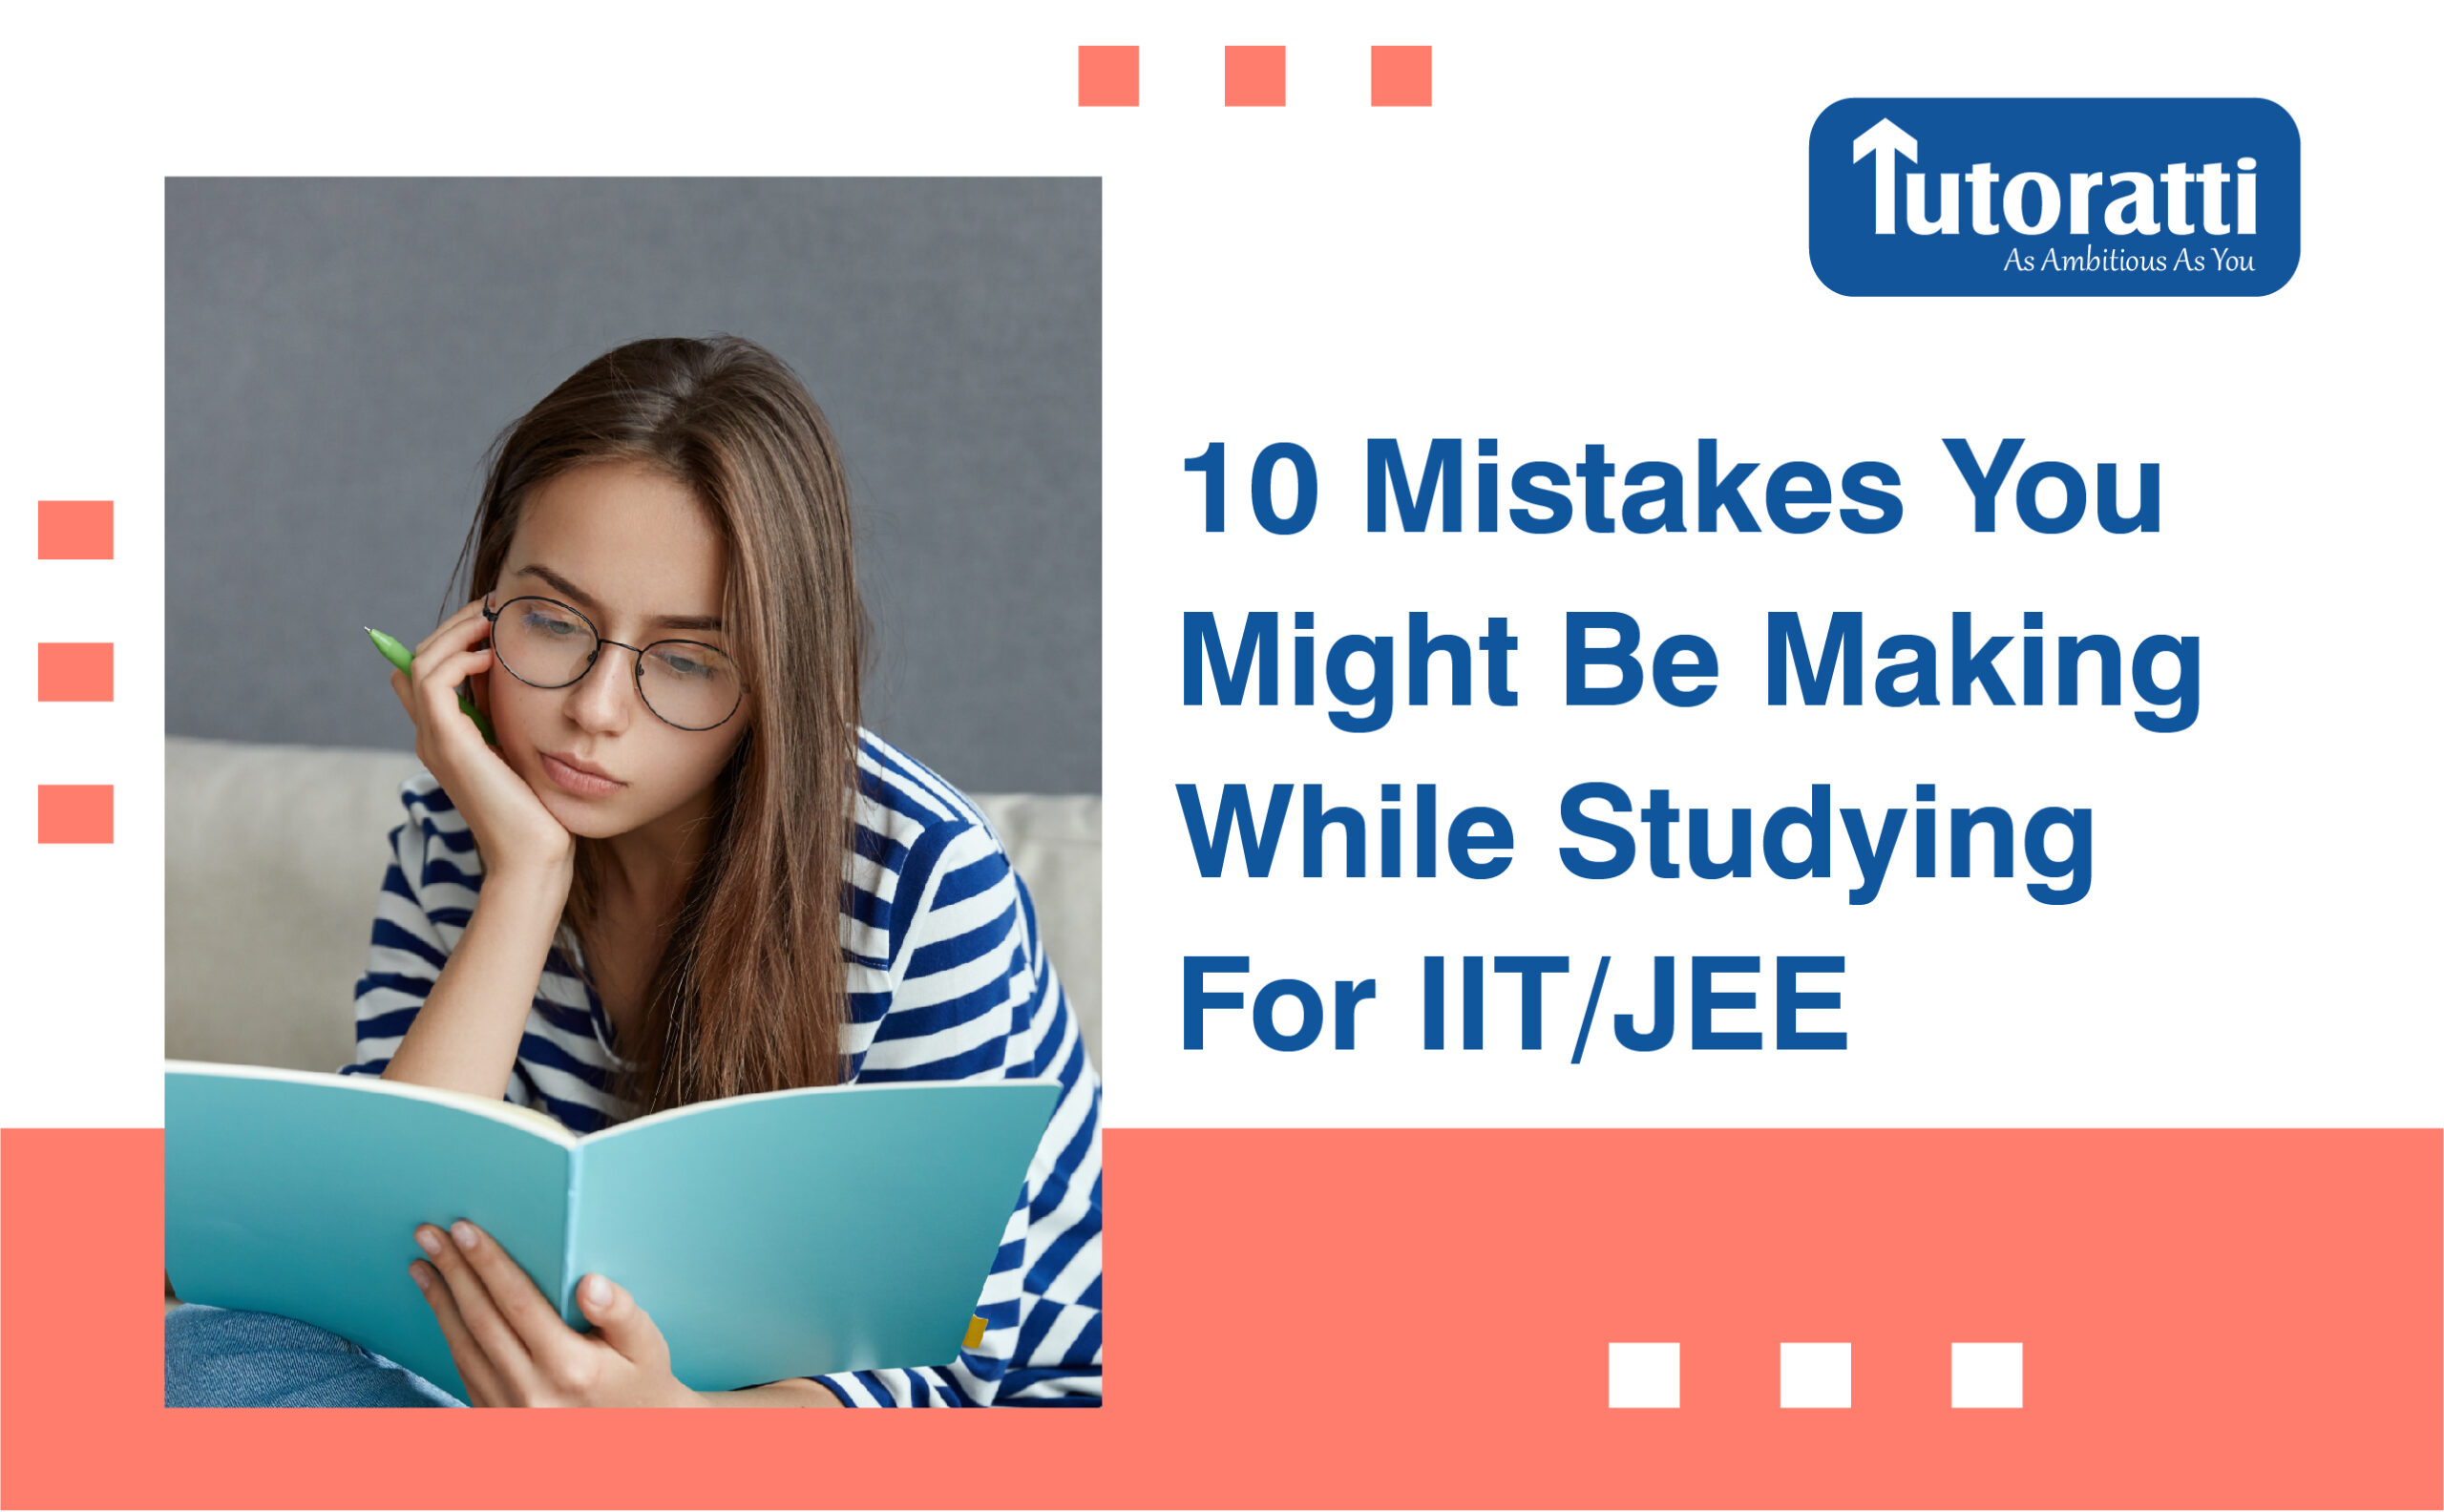 10 Mistakes You Might Be Making While Studying For IIT/JEE